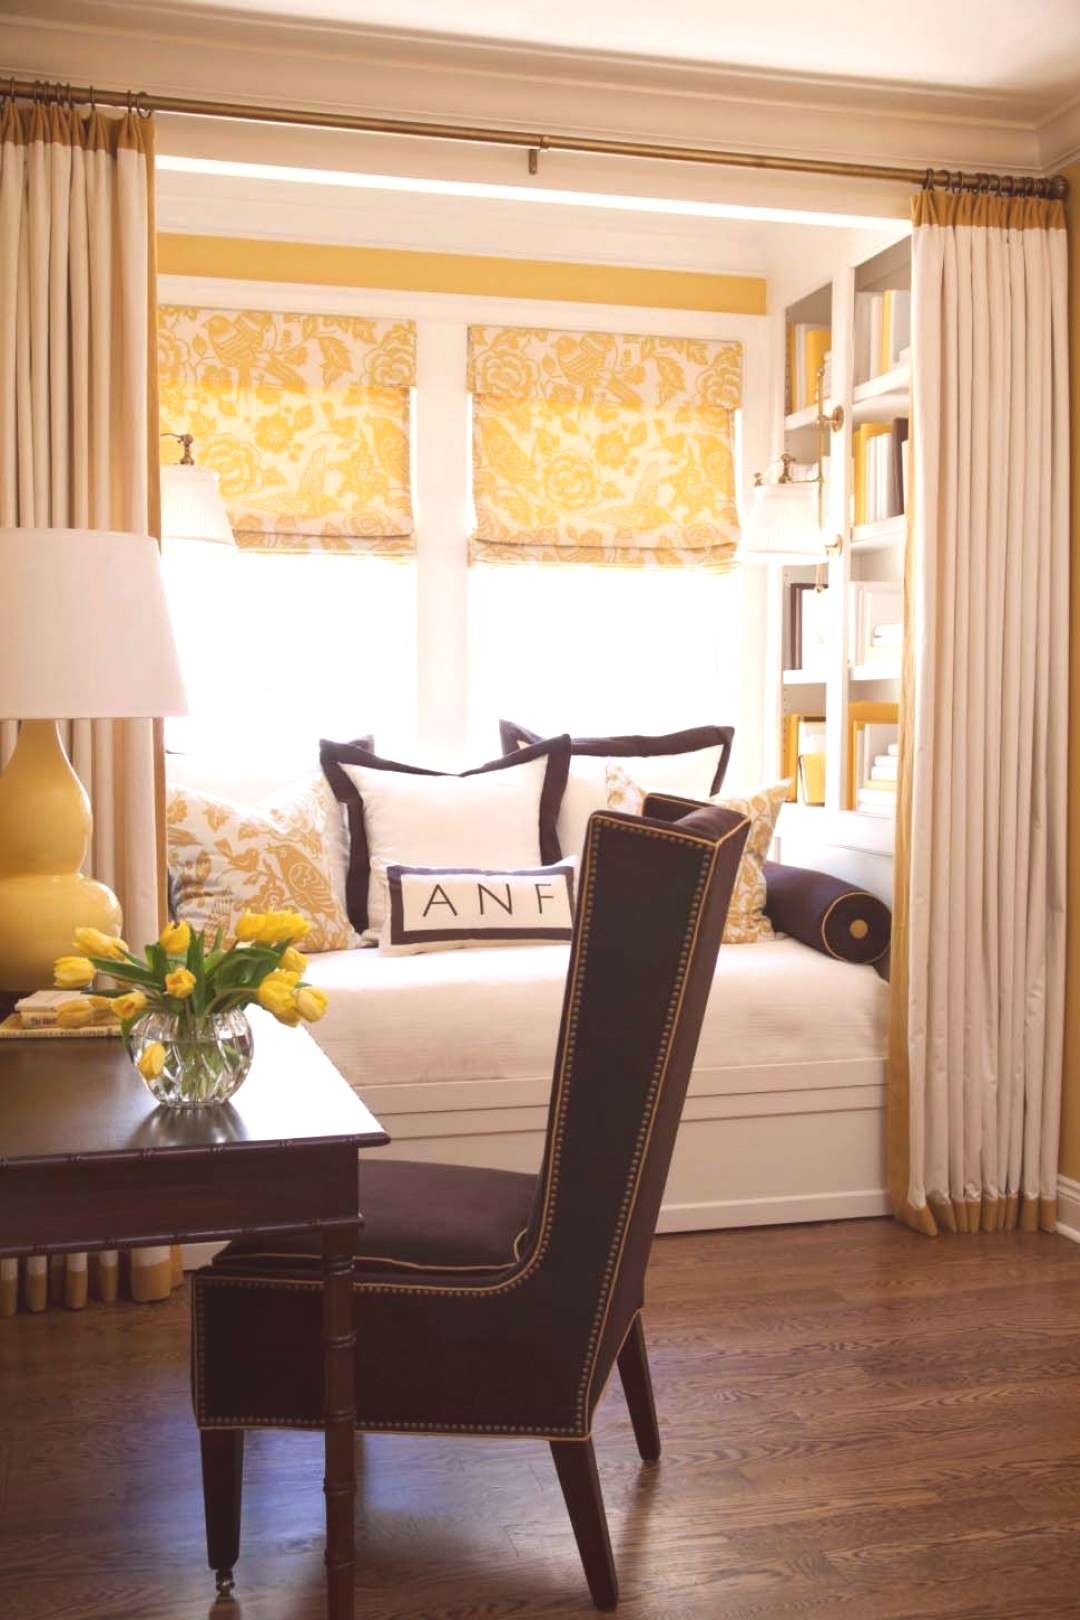 30 Incredibly cozy built-in reading nooks designed for lounging, 30 Incredibly cozy built-in readi